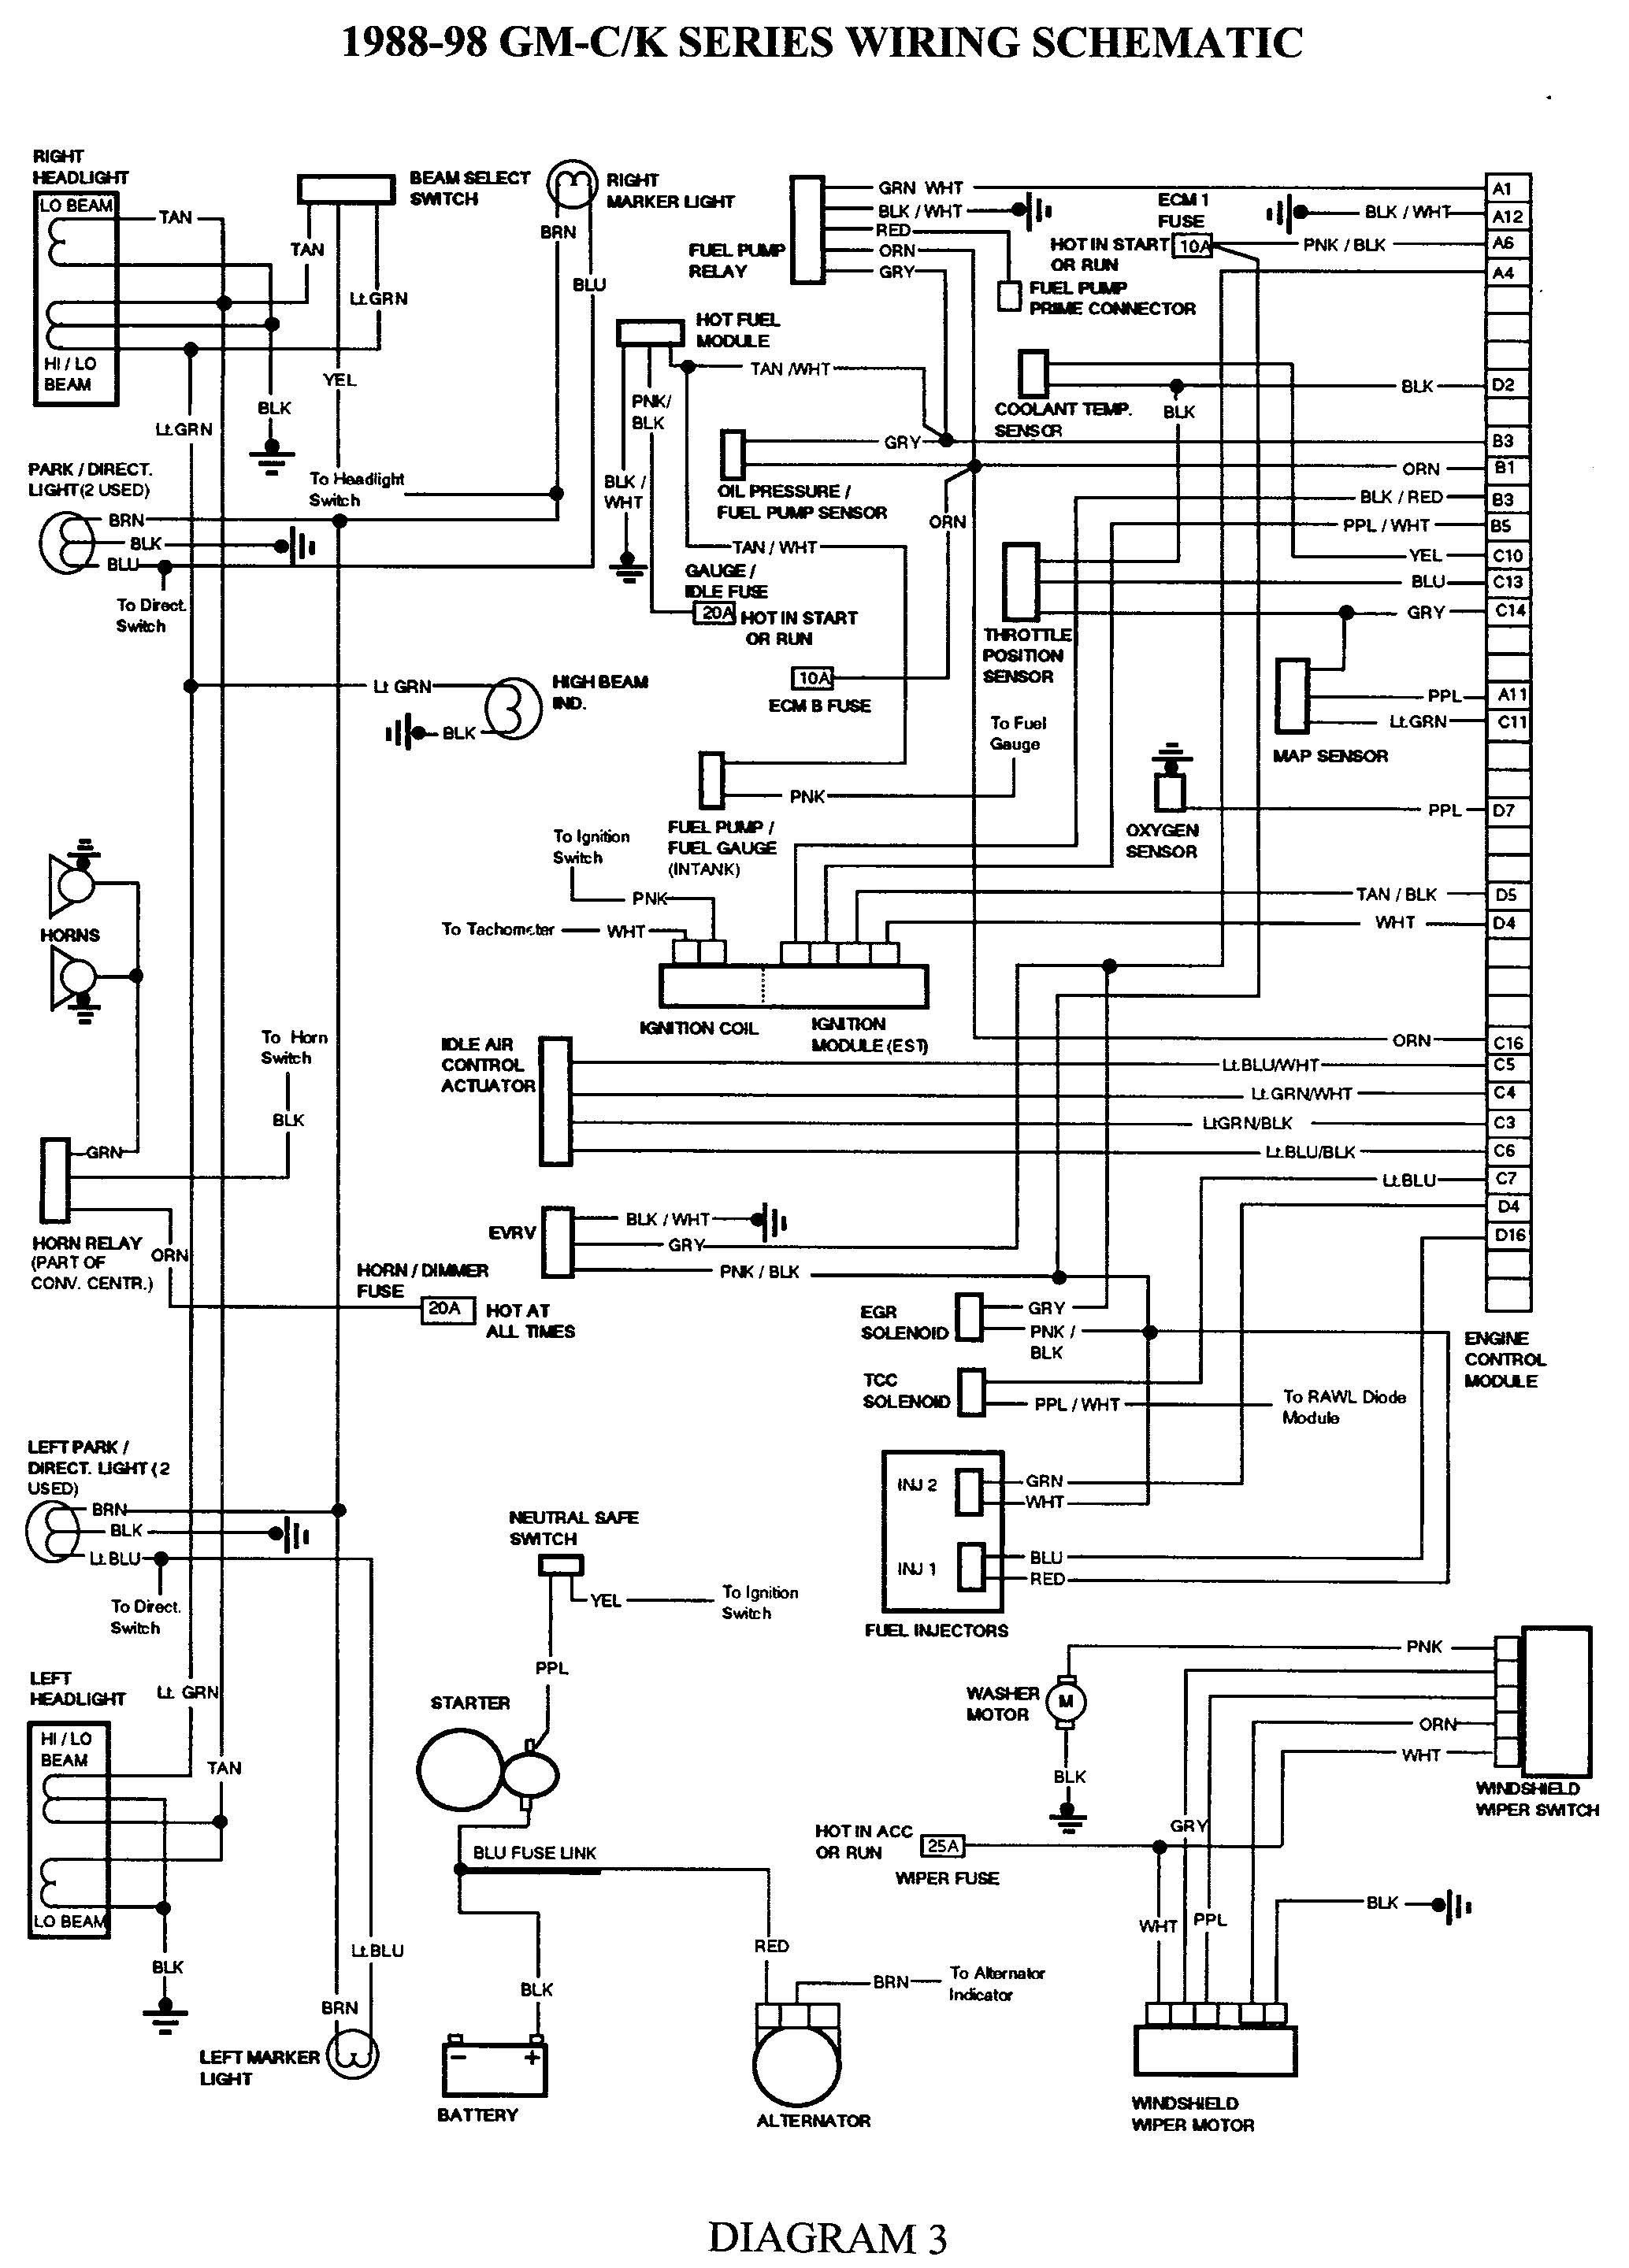 1998 Chevy S10 Headlight Wiring Diagram Detailed Wiring Diagrams 1998 S10 Clutch Diagram 1998 S10 Headlight